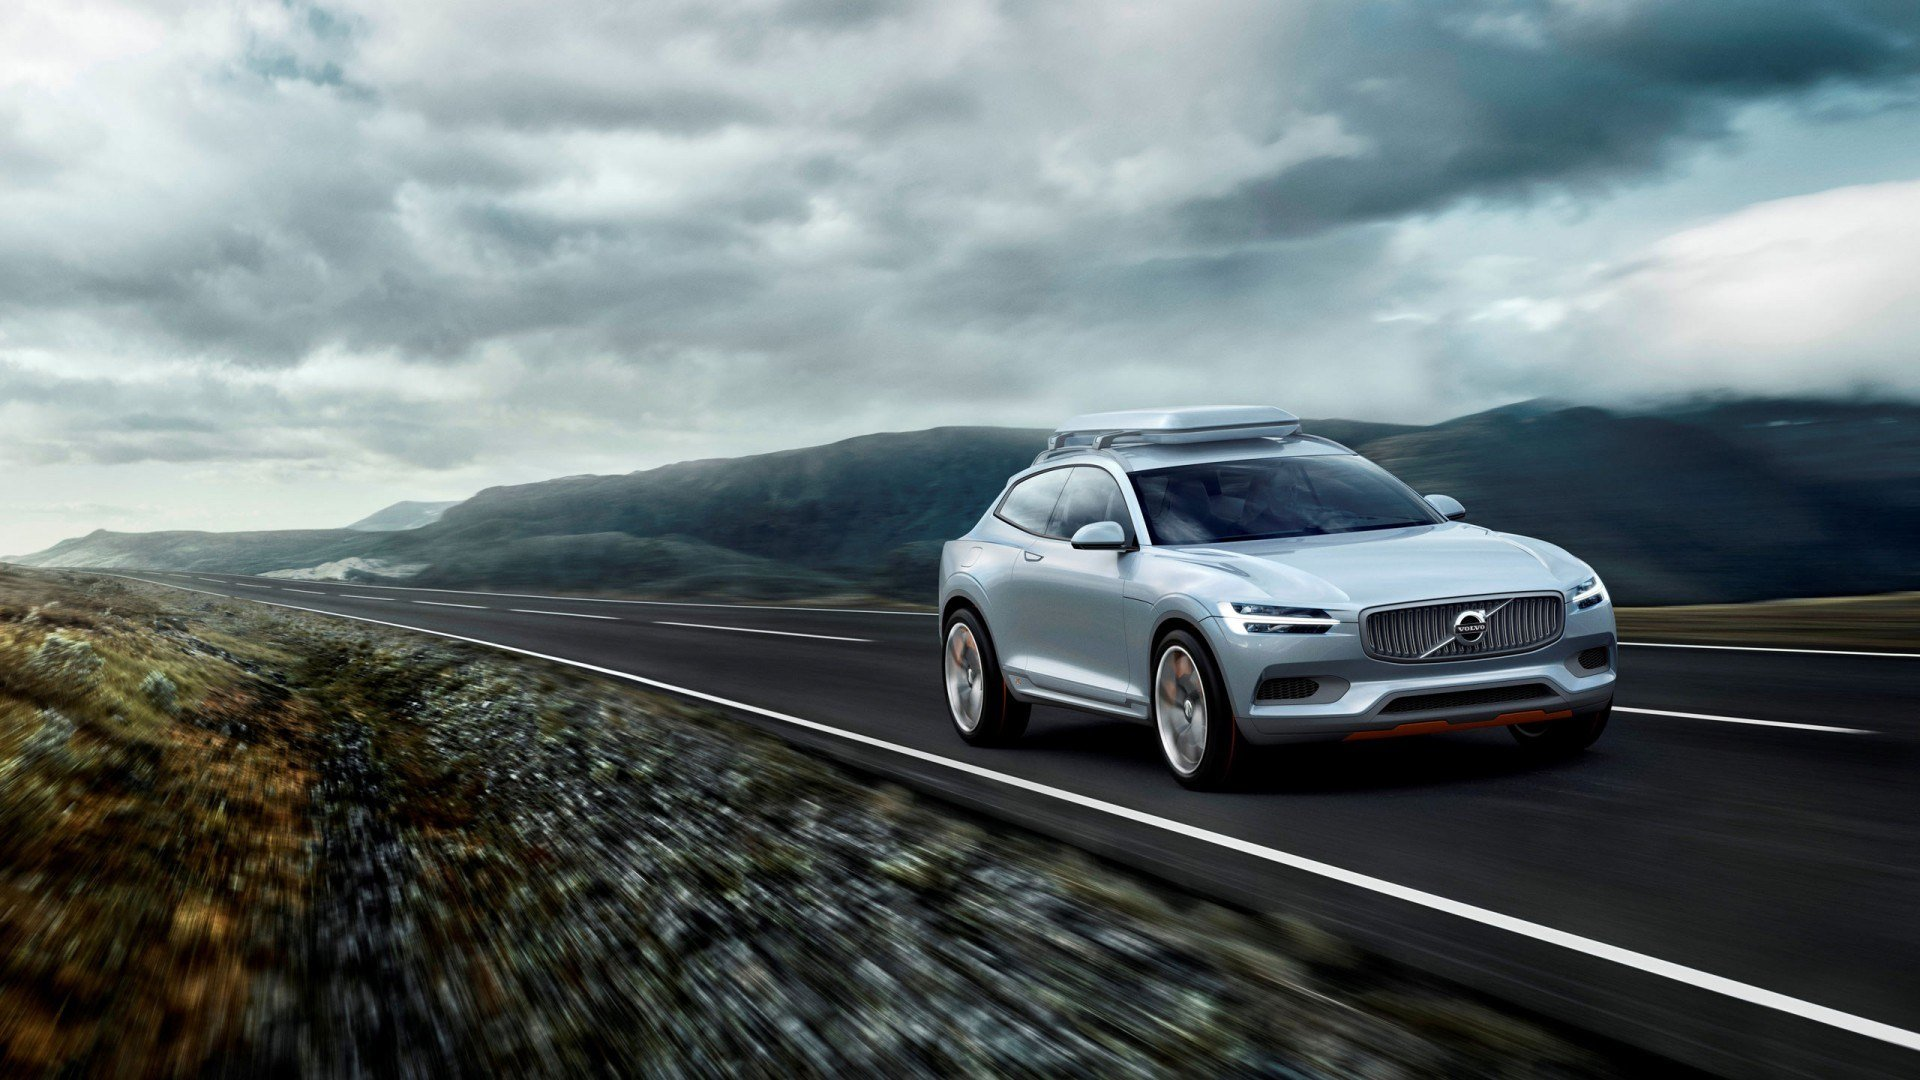 New 2014 Volvo Concept Xc Coupe Wallpaper Hd Car Wallpapers On This Month